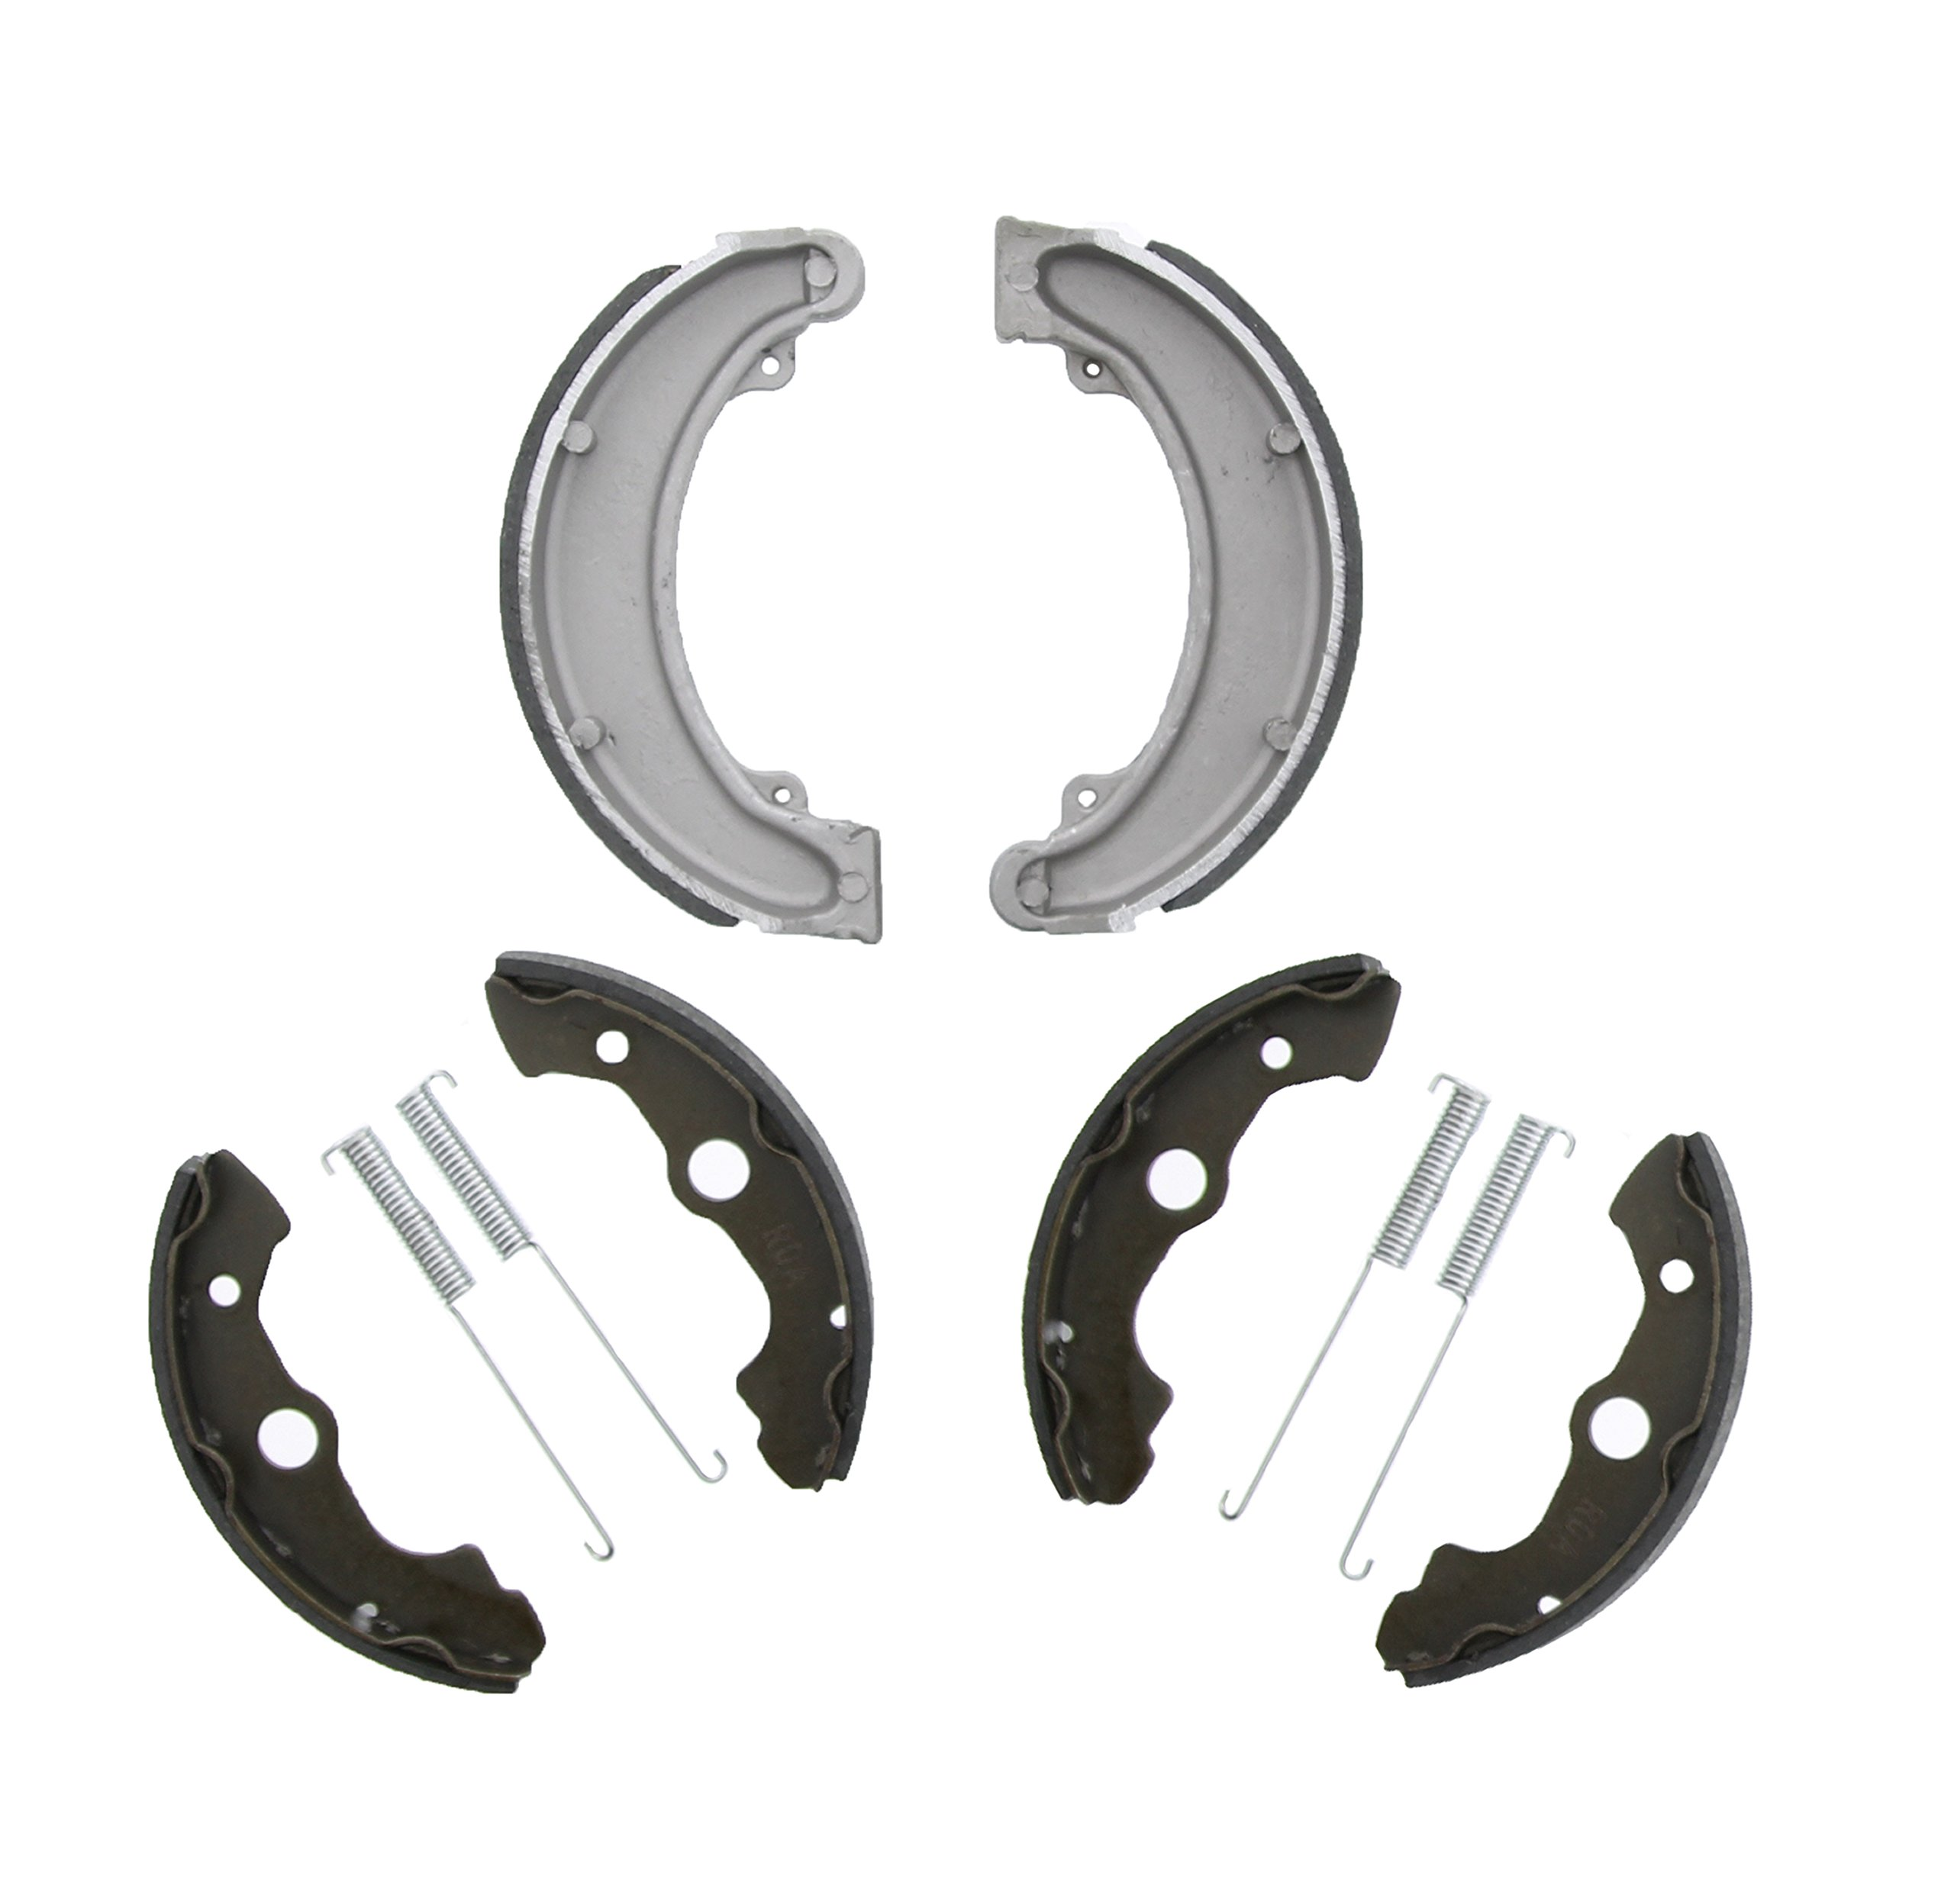 Race Driven Honda OEM Replacement Front and Rear Brake Shoes Brakes for FourTrax 300 TRX300 TRX300FW